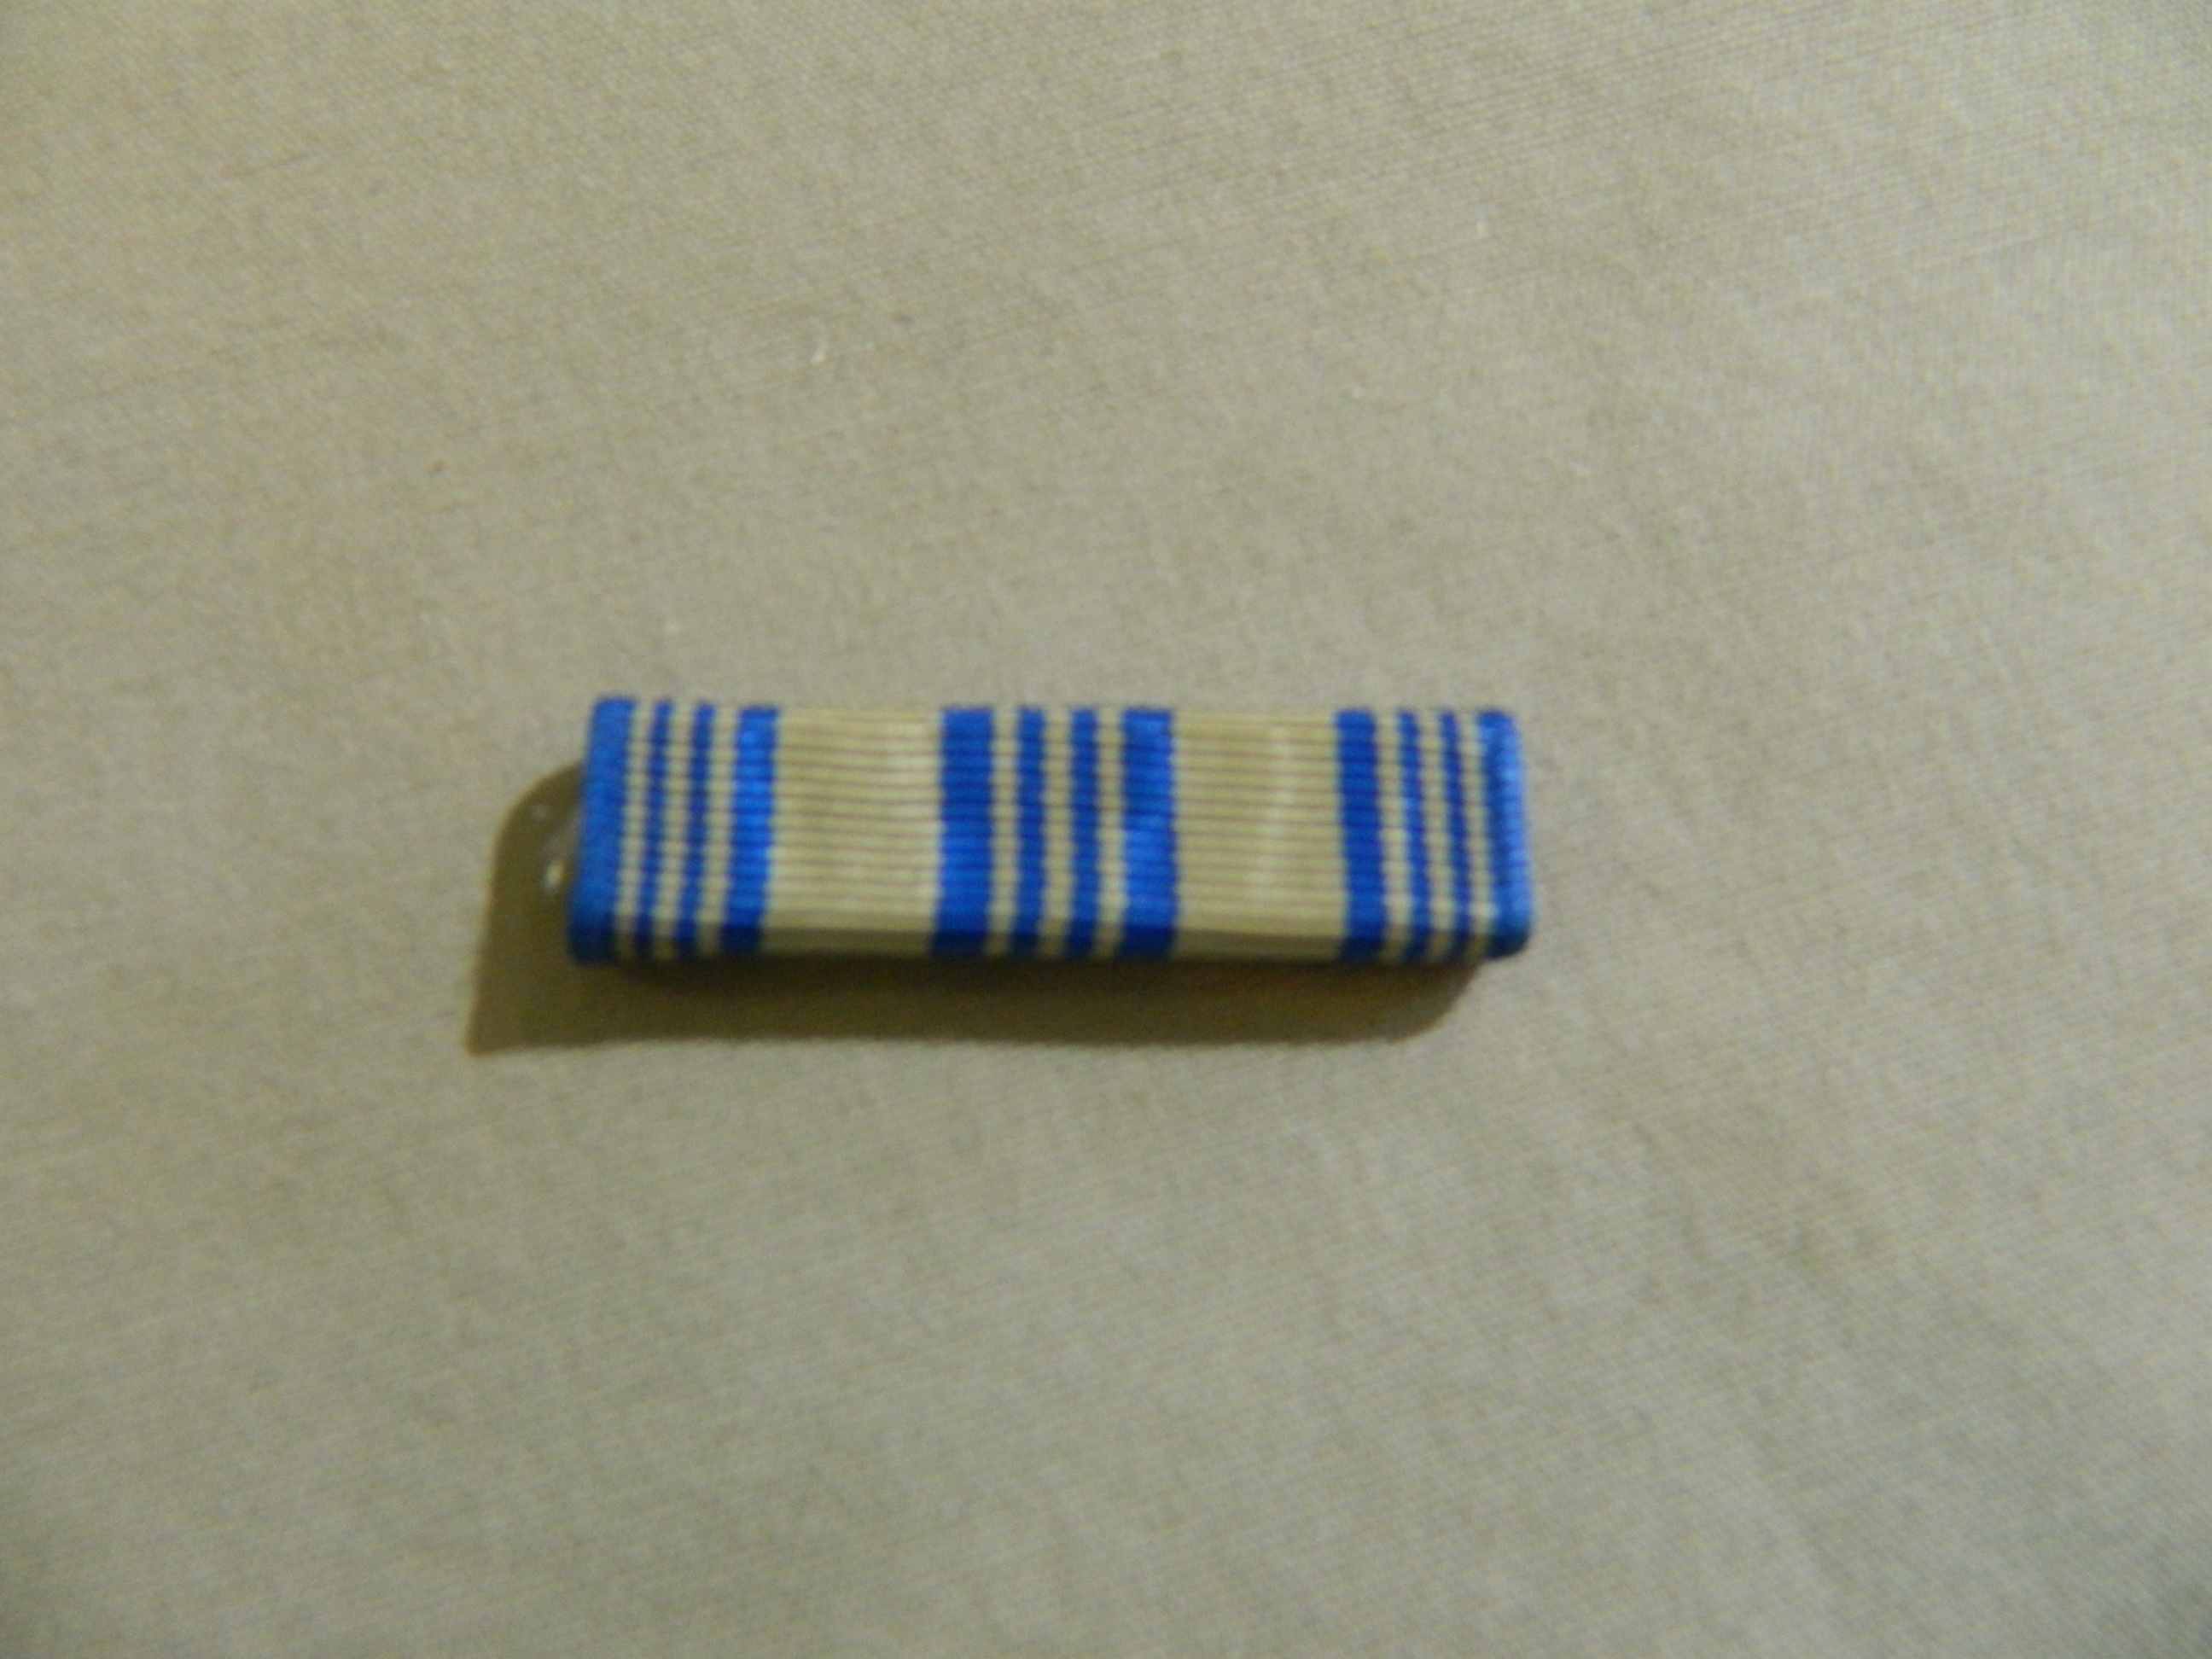 Ribbon: Air Force Achievement Medal